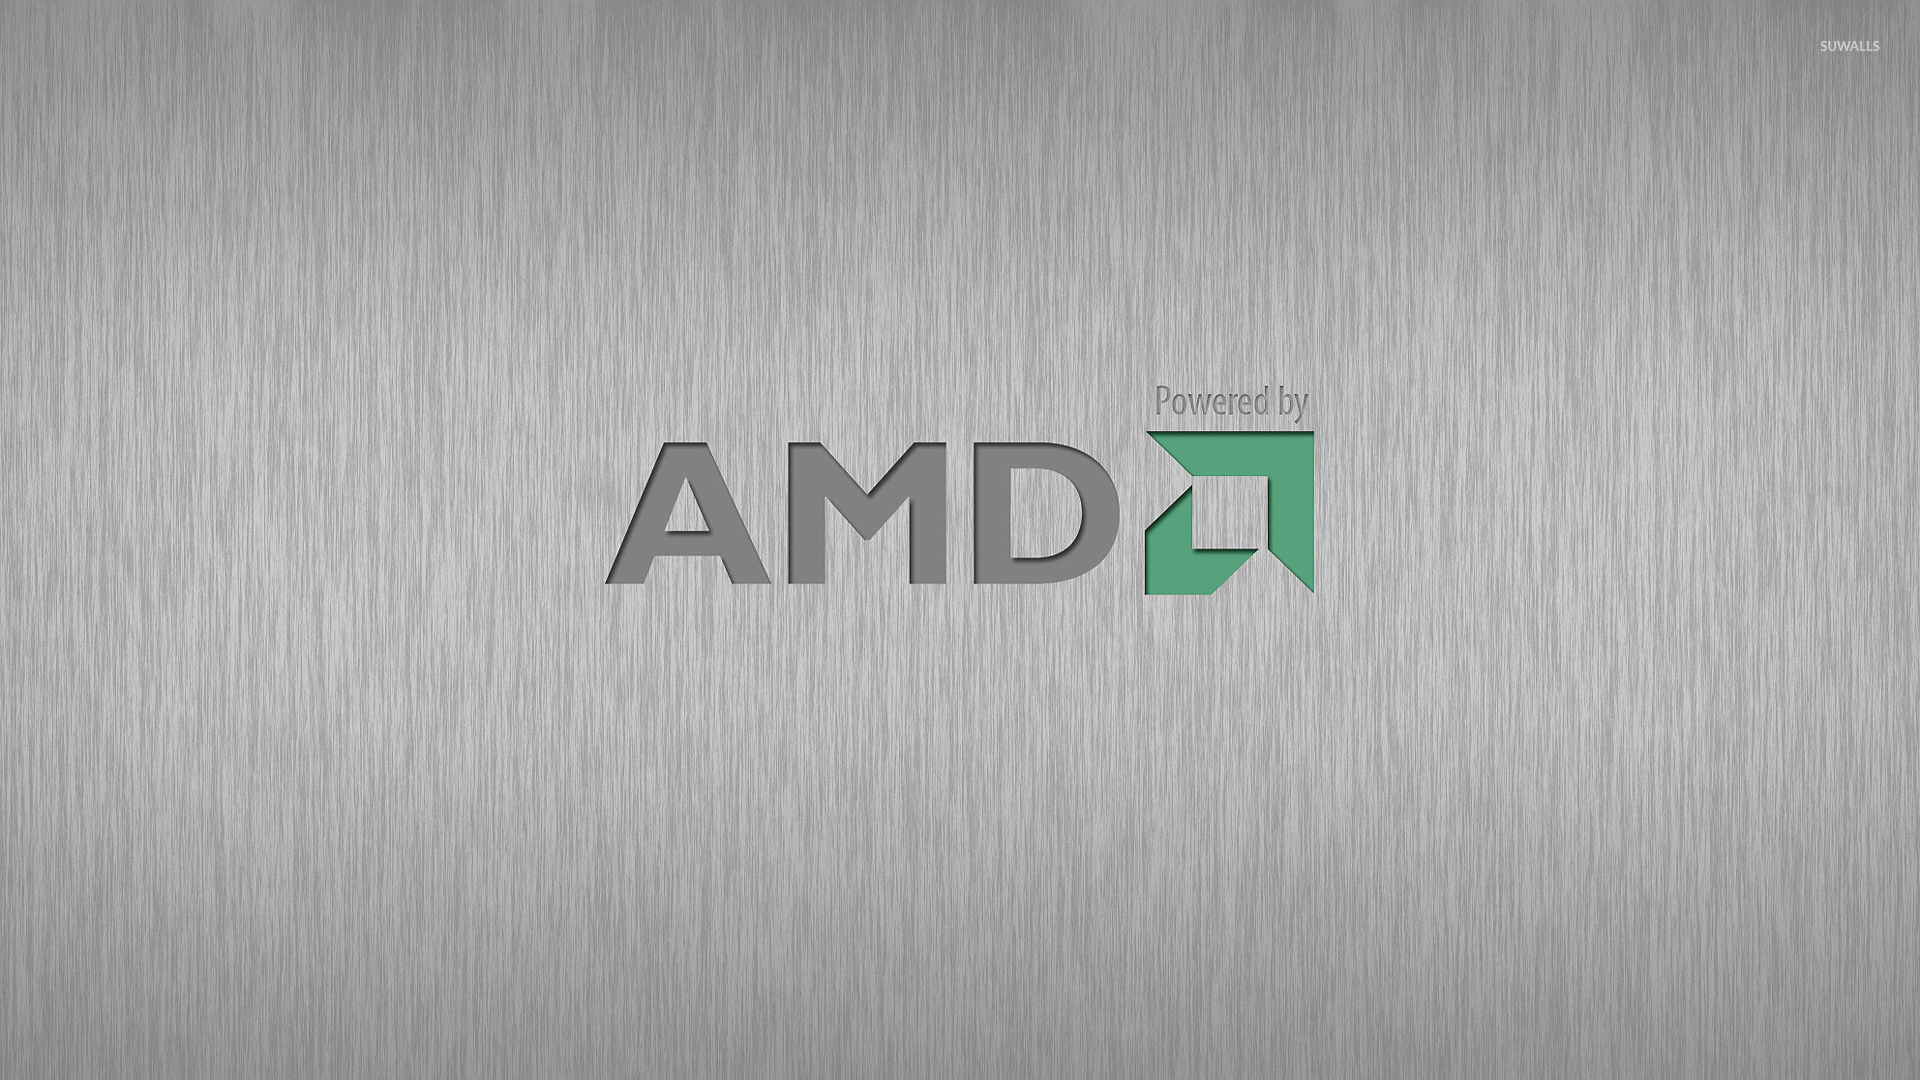 Powered By AMD Wallpaper